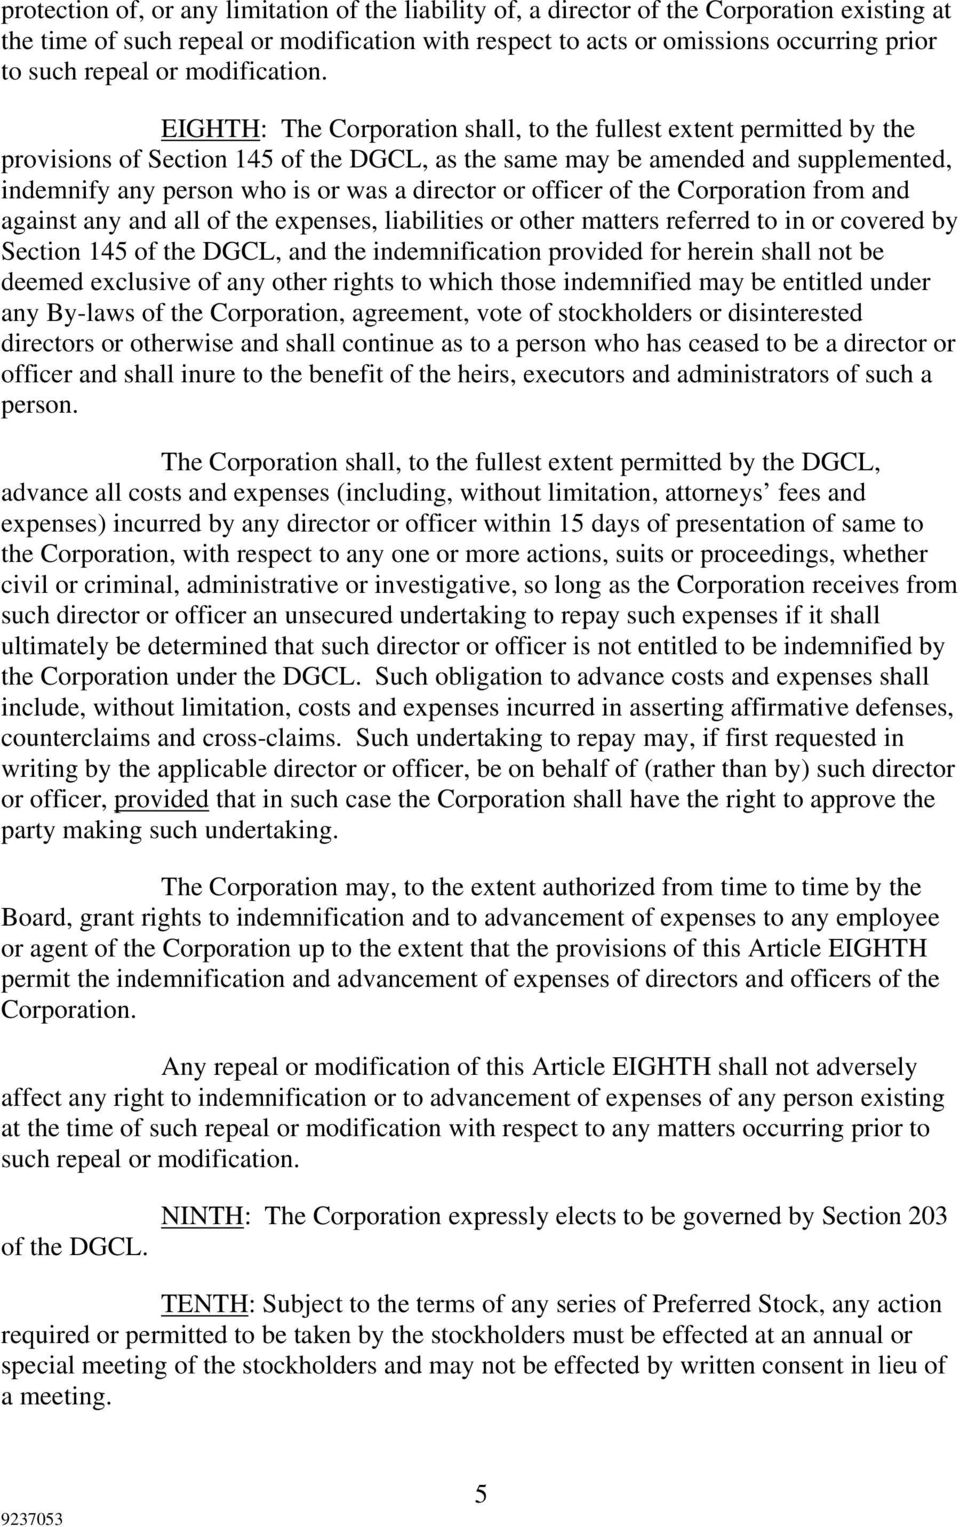 EIGHTH: The Corporation shall, to the fullest extent permitted by the provisions of Section 145 of the DGCL, as the same may be amended and supplemented, indemnify any person who is or was a director